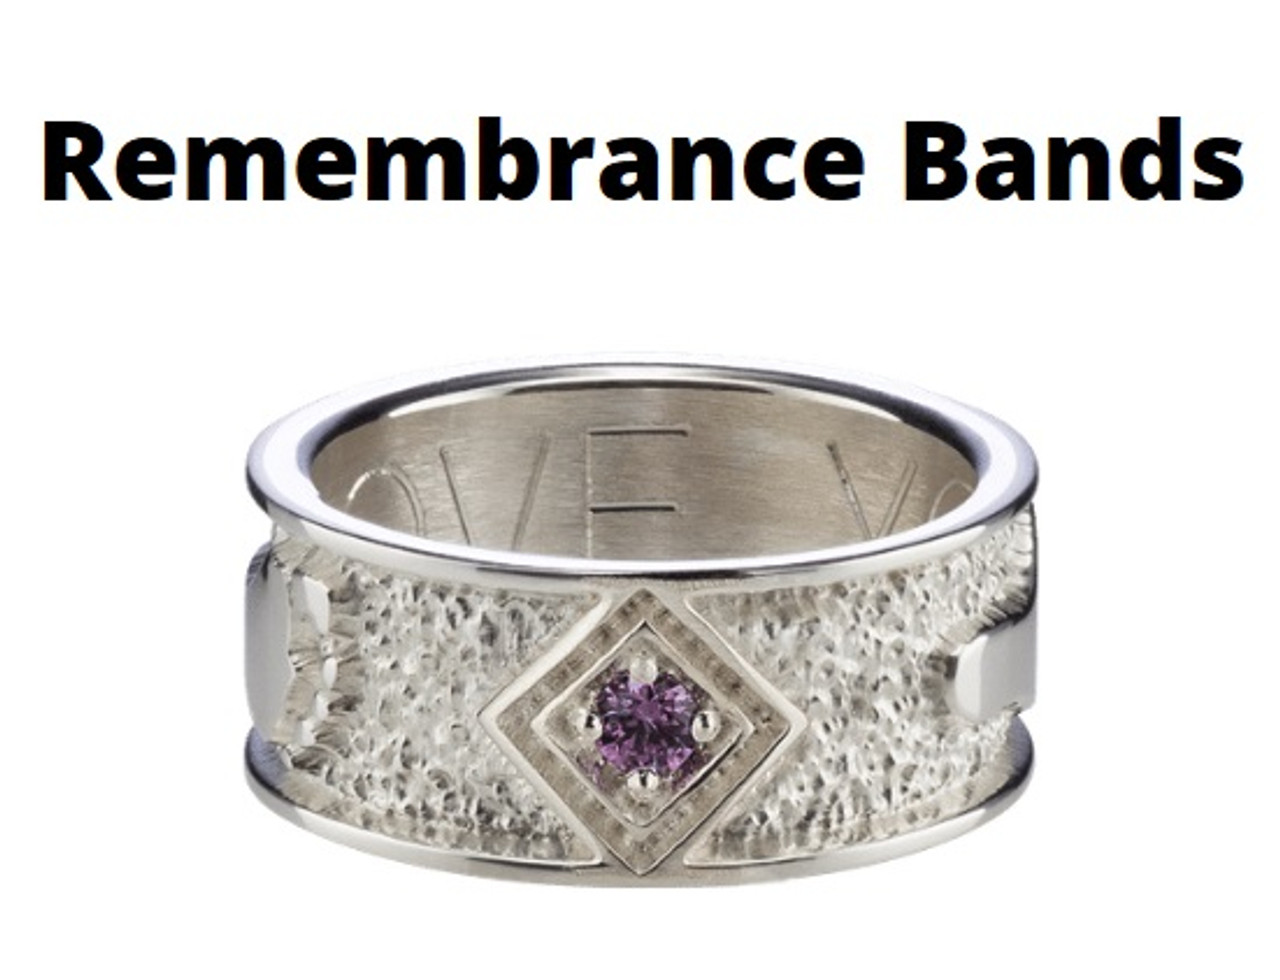 Remembrance Band Rings